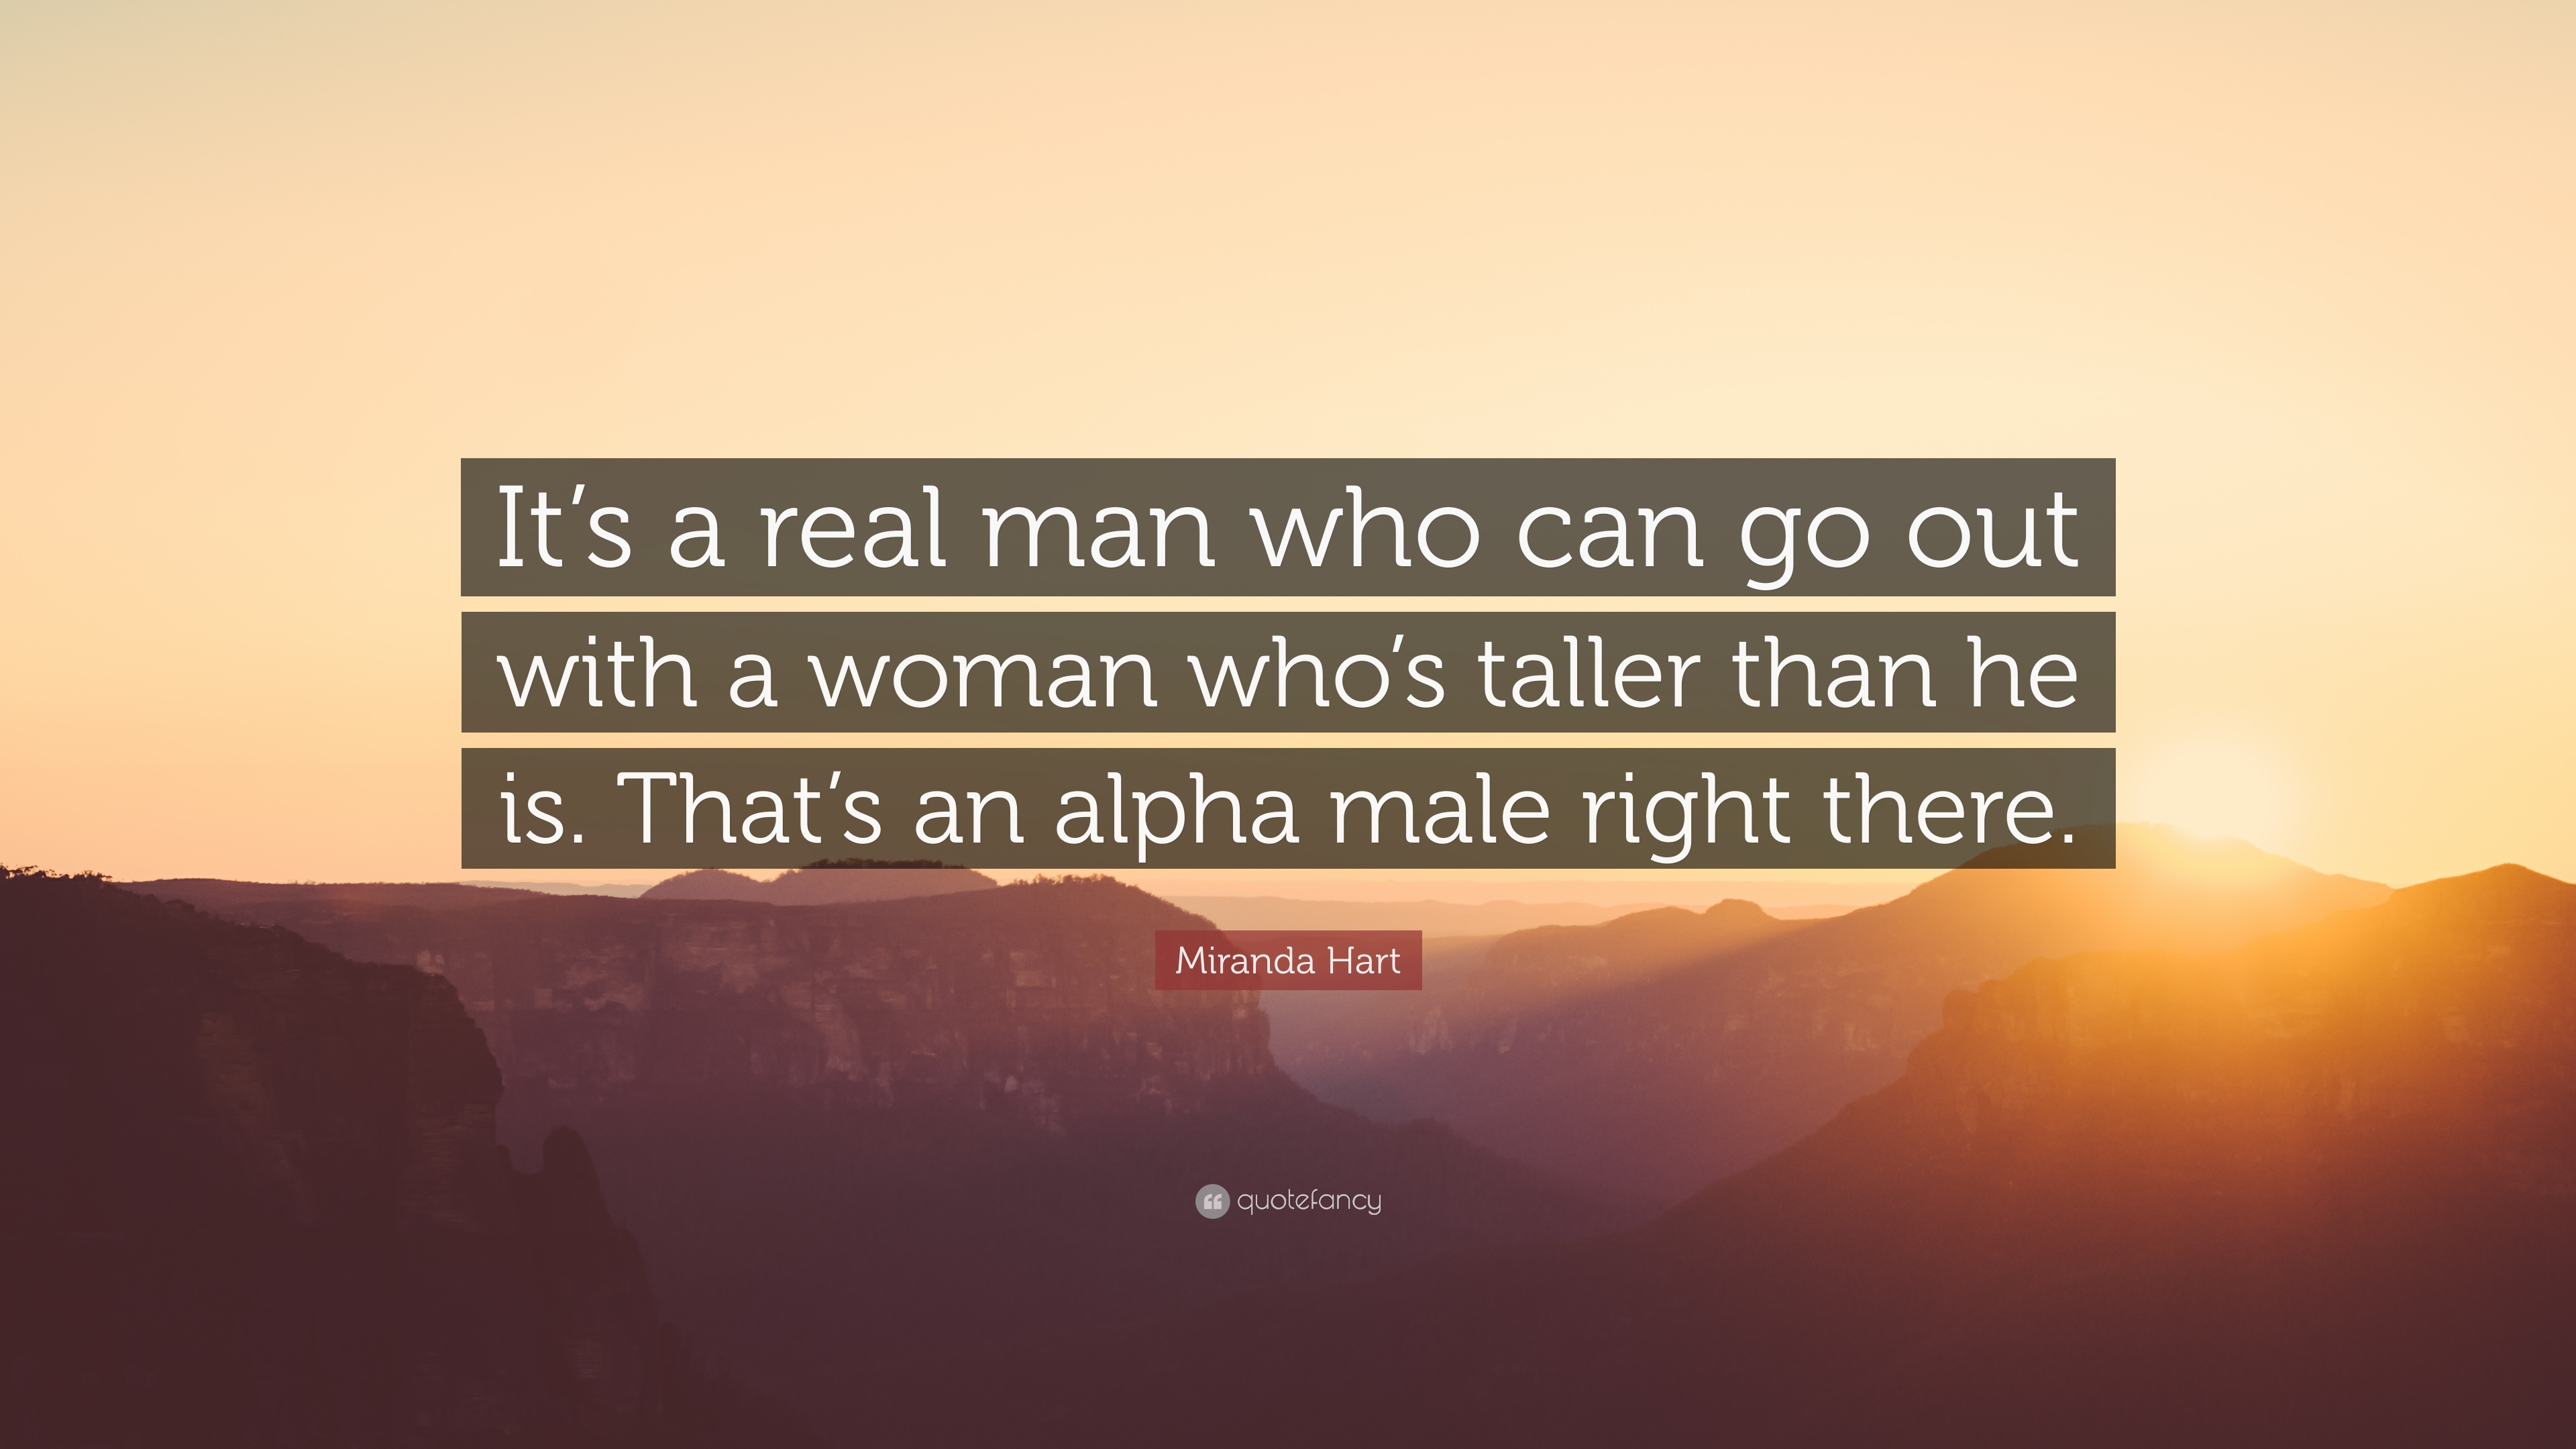 What is he - a real man